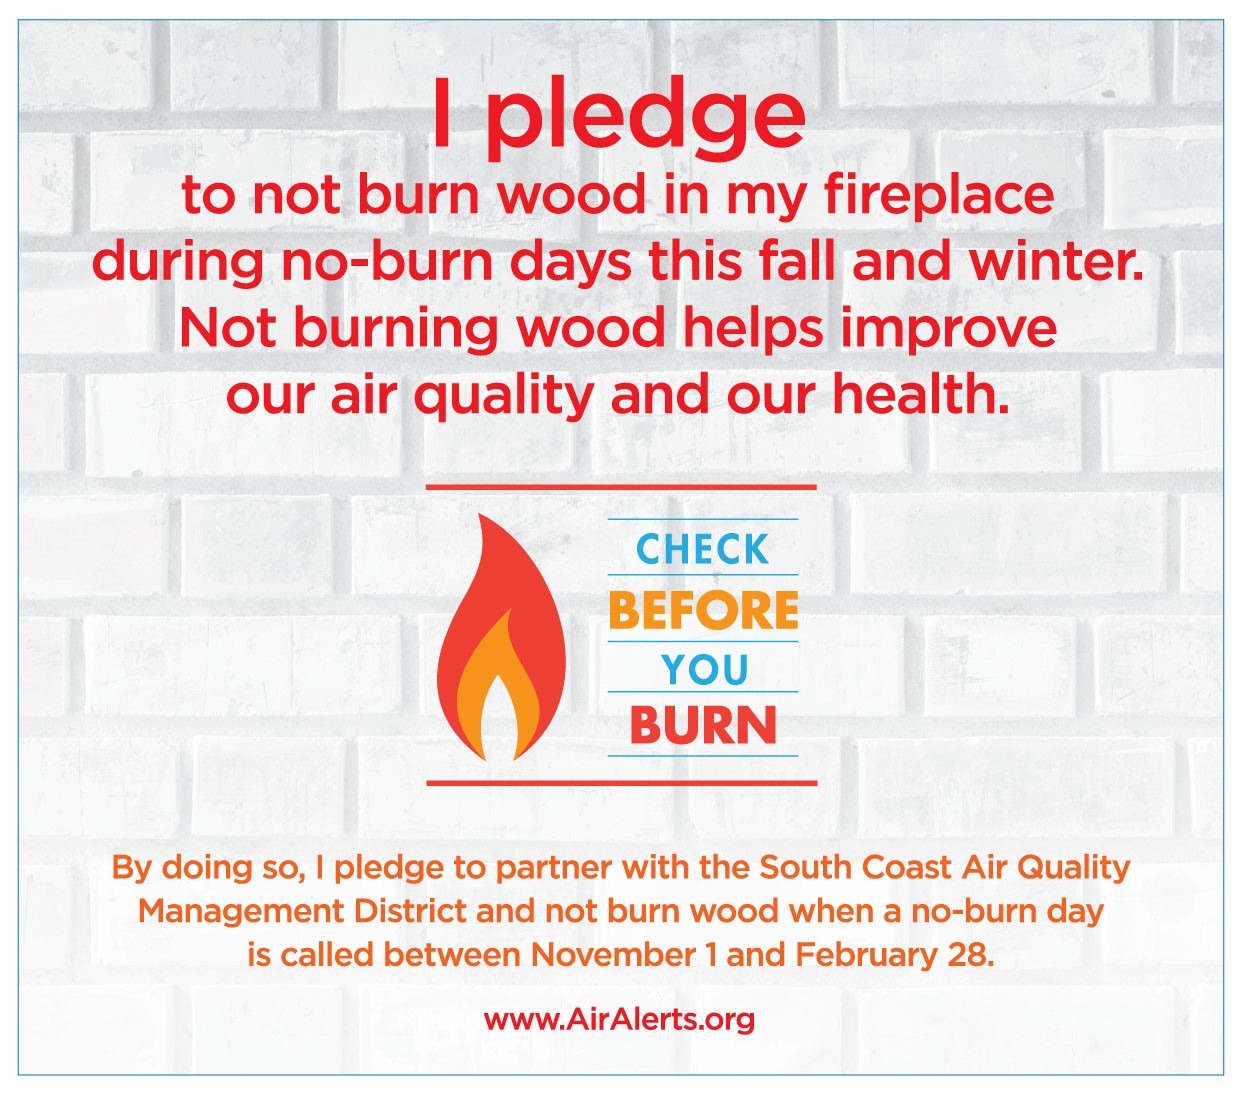 Check Before You Burn pledge banner